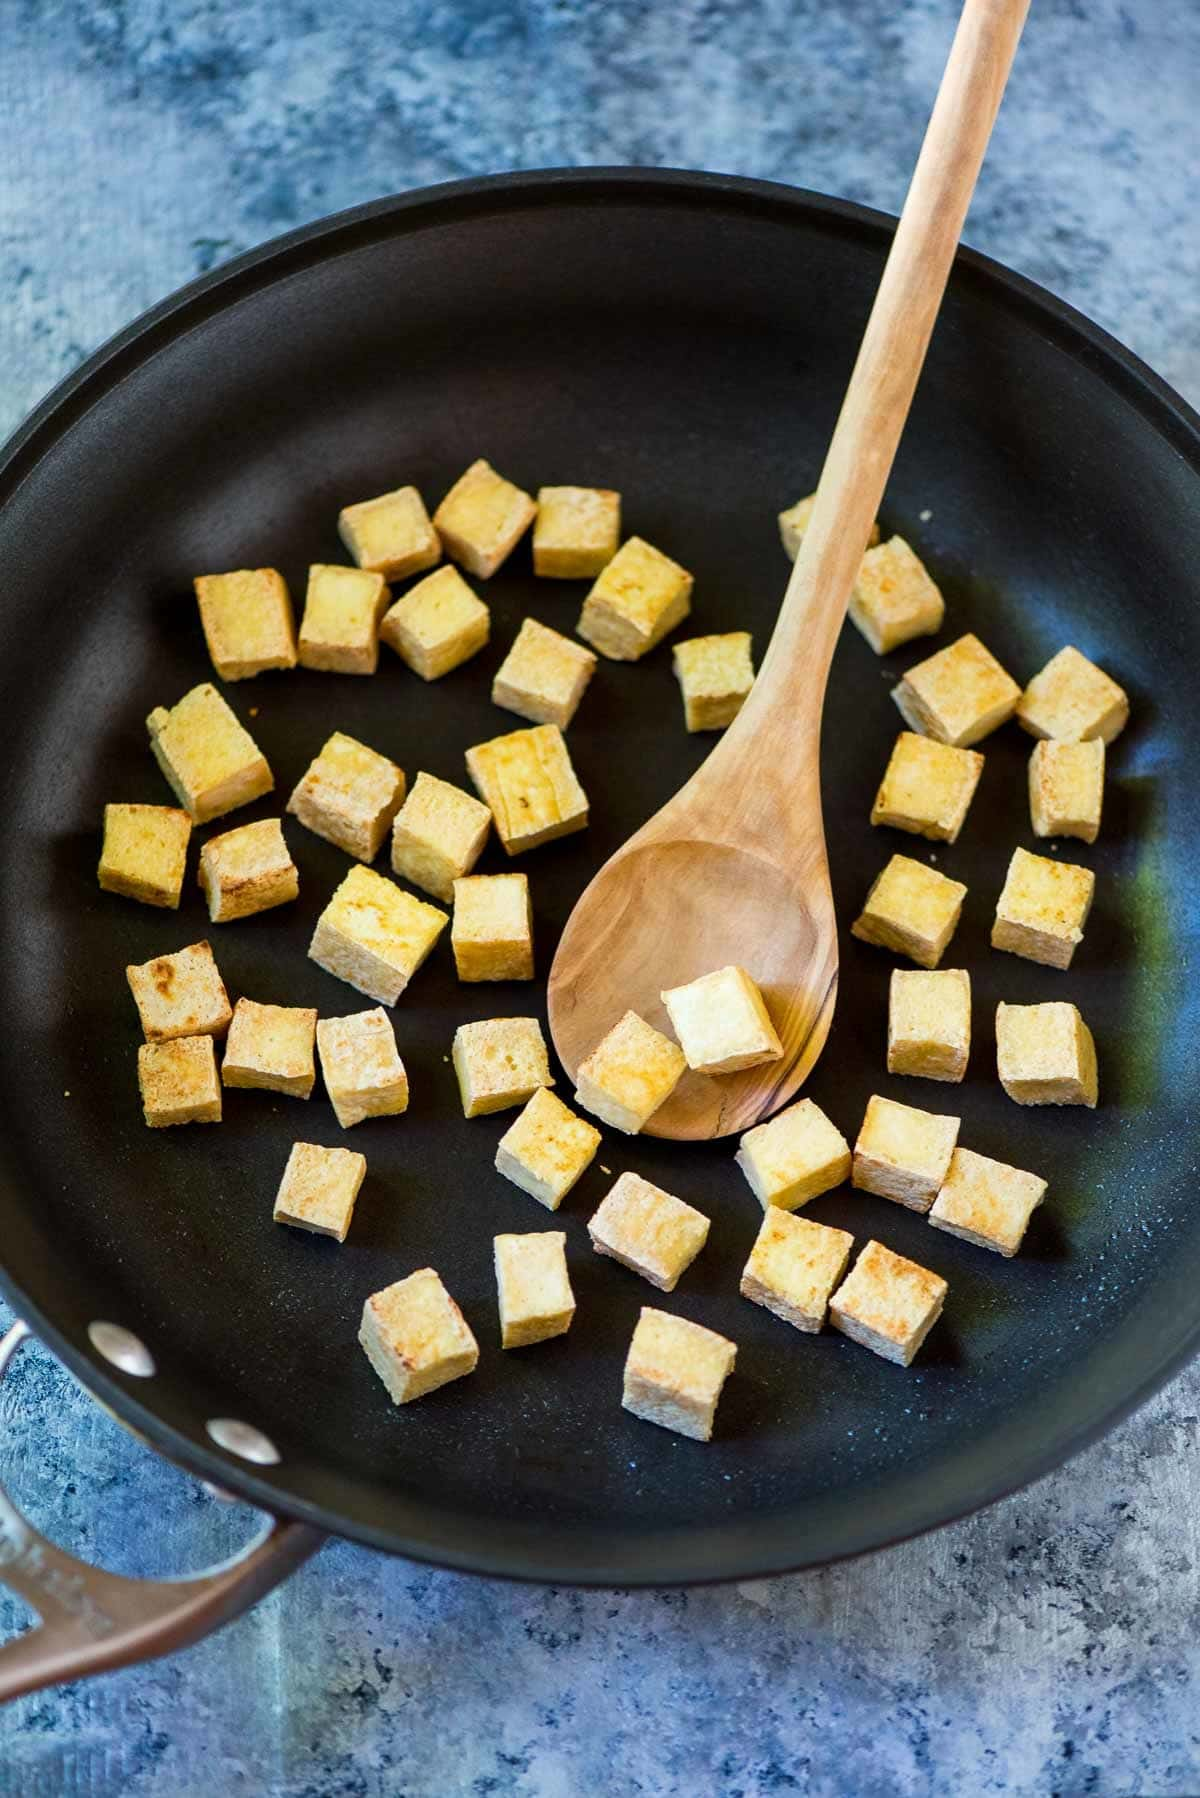 How To Make Crispy Tofu That Actually Tastes Great No Baking Pressing Or Frying